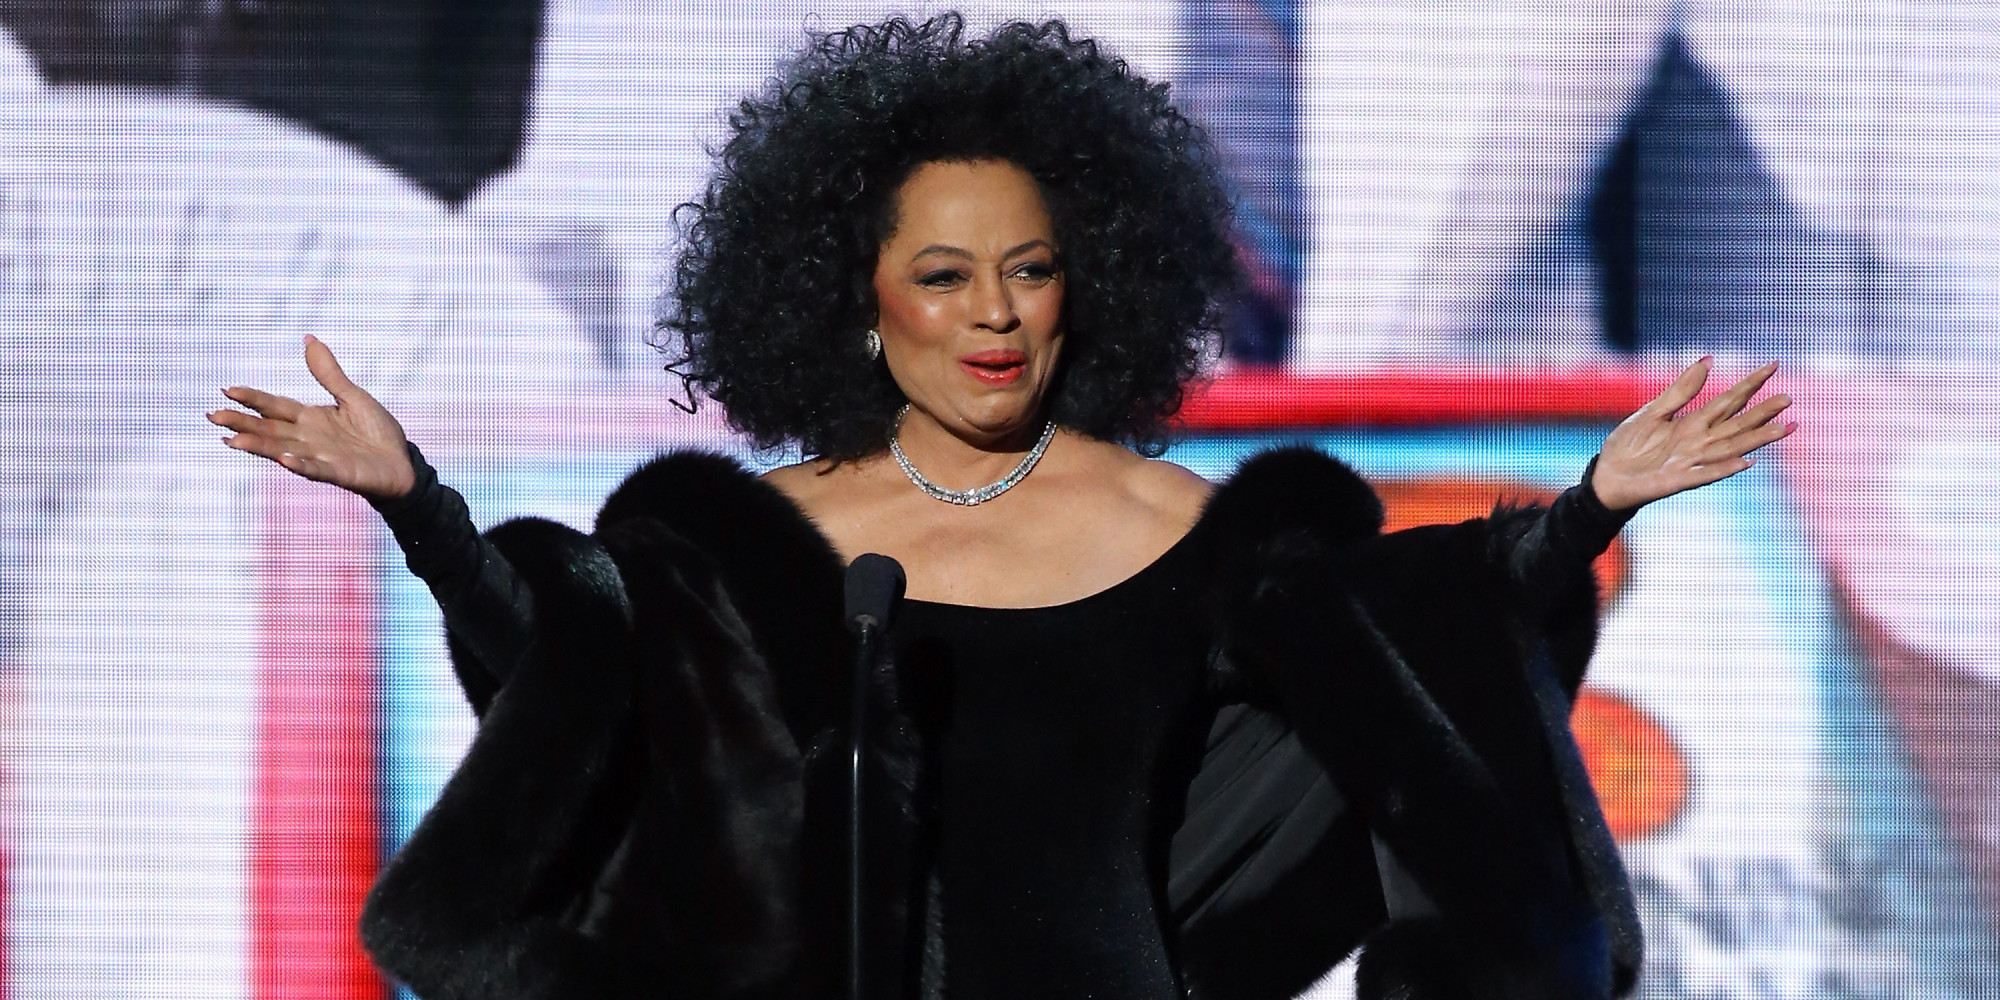 Summer Hairstyles for African American Women #3: The Natural Medium Hairstyle - Diana Ross